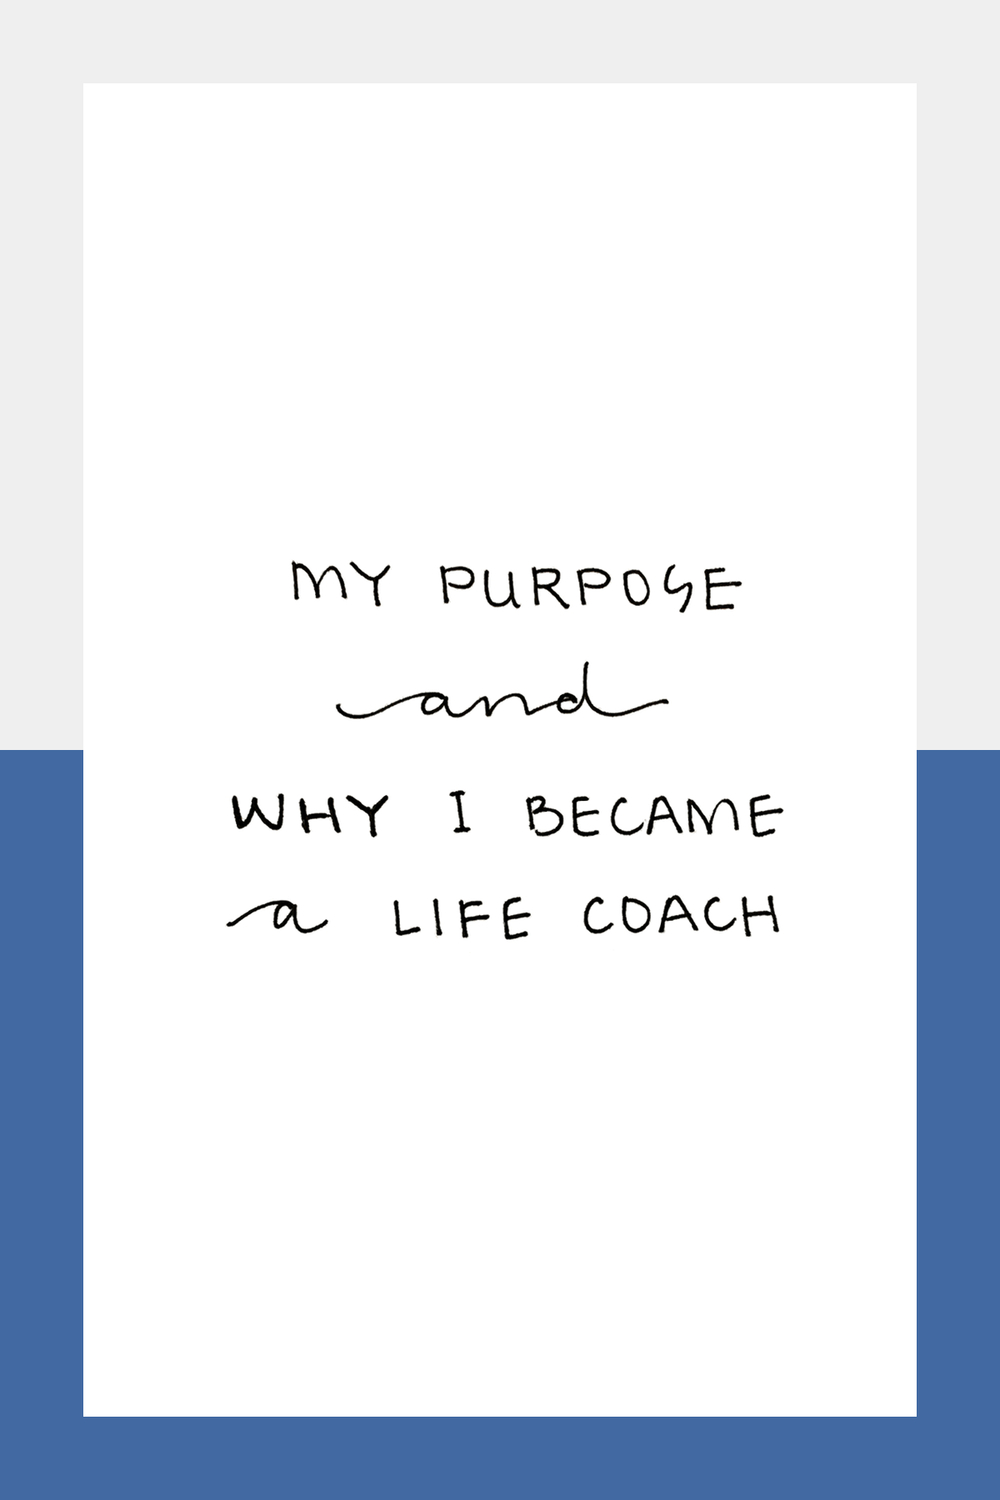 My Purpose + Why I Became a Life Coach //Unapologize.com